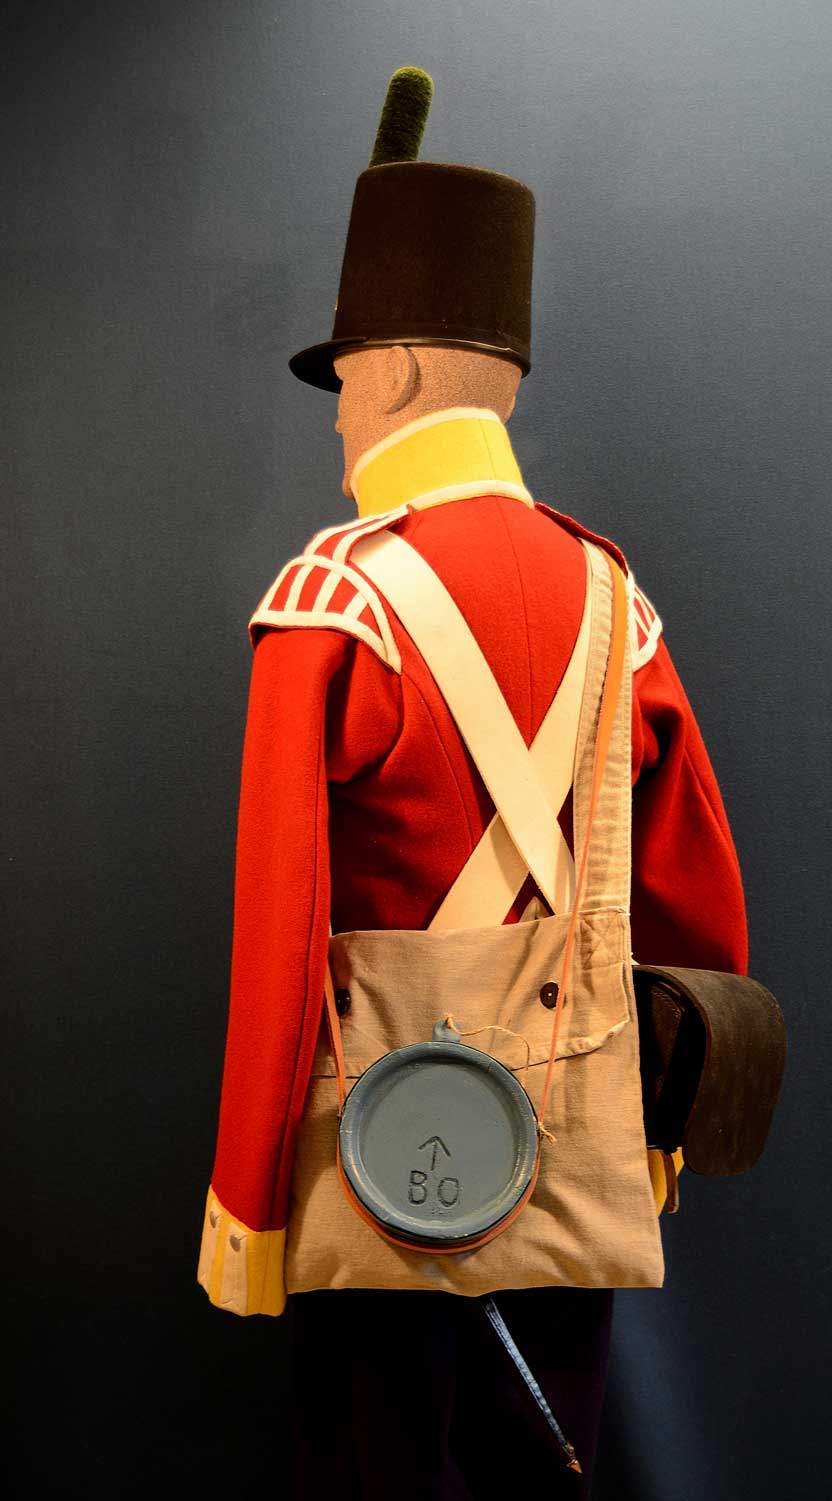 British, Lower Canada Militia, 1813